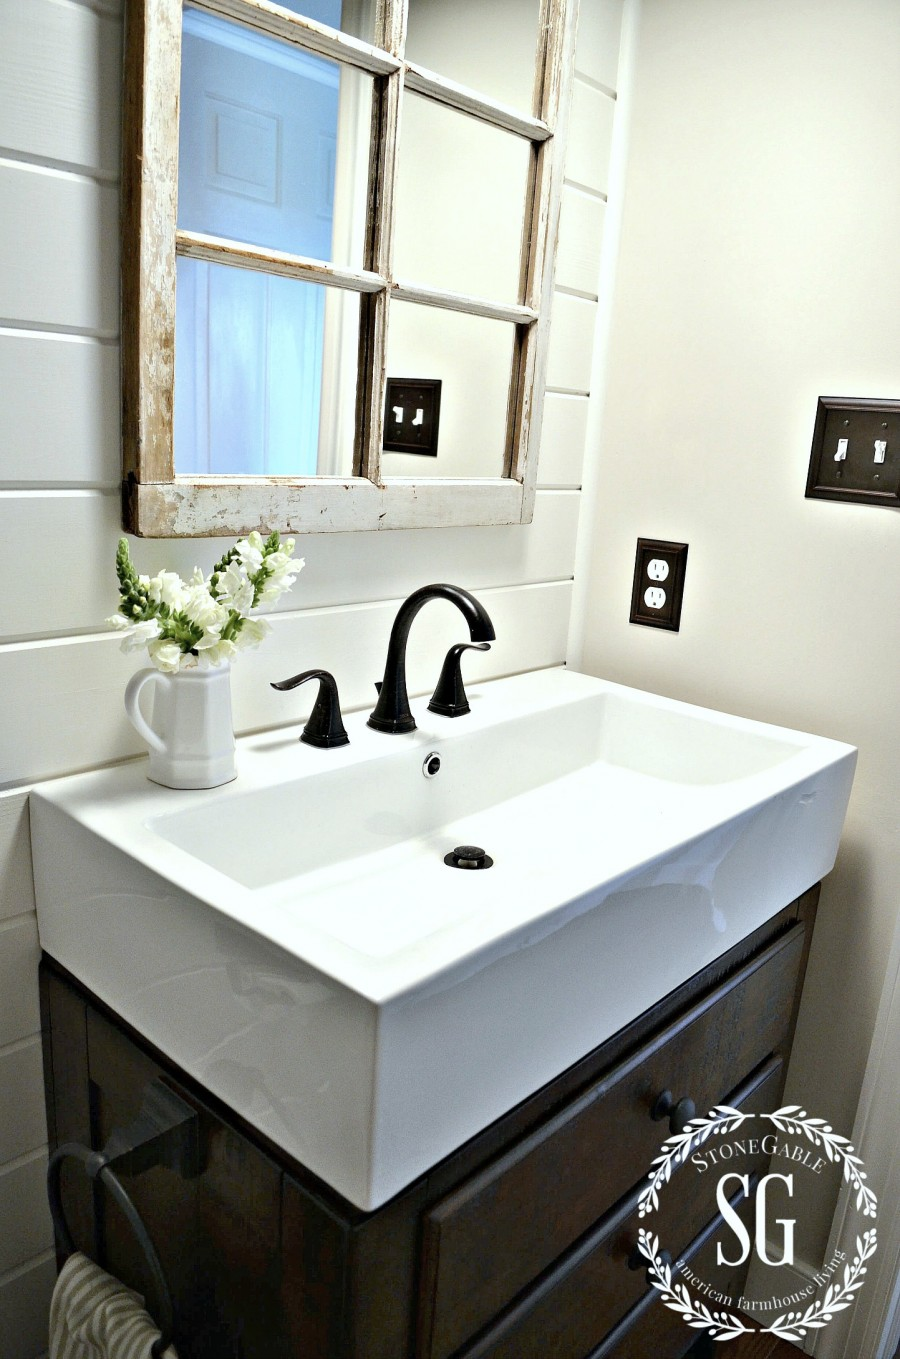 FARMHOUSE POWDER ROOM REVEAL-farmhouse sink and fixtures-stonegableblog.com